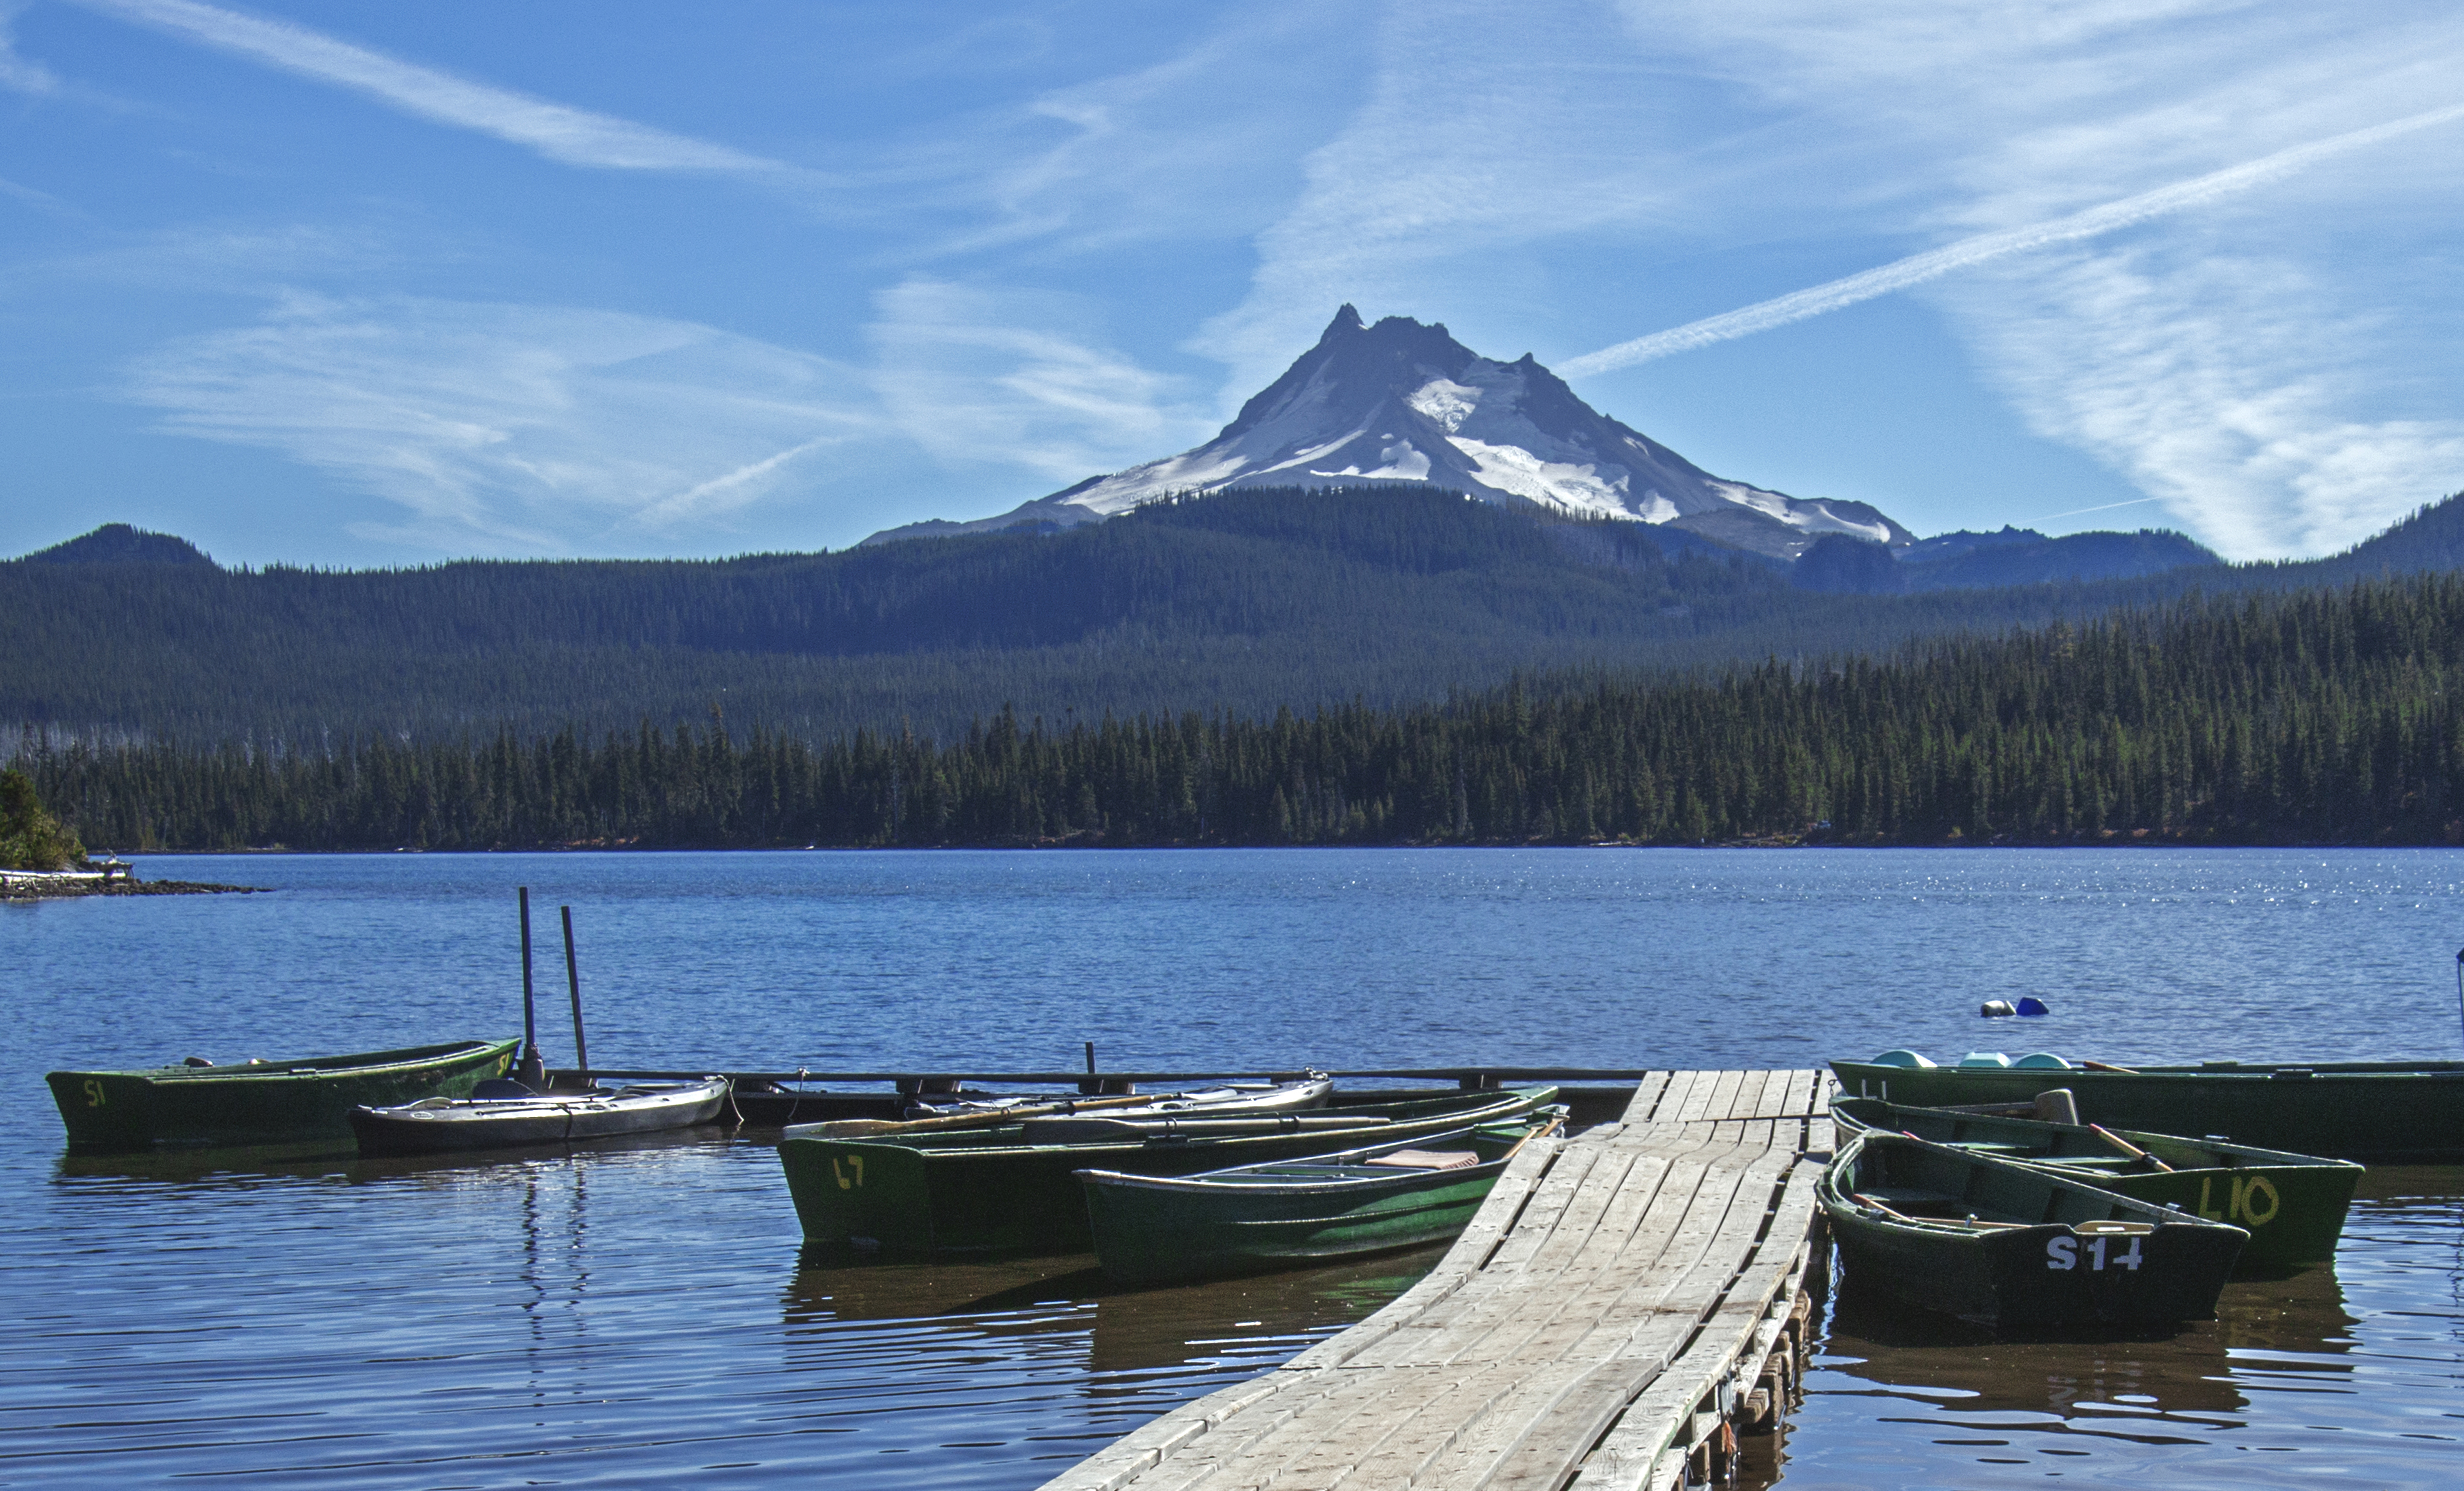 Mt Jefferson from Olallie Lake, Oregon, Boat, Forest, Mountain, Oregon, HQ Photo